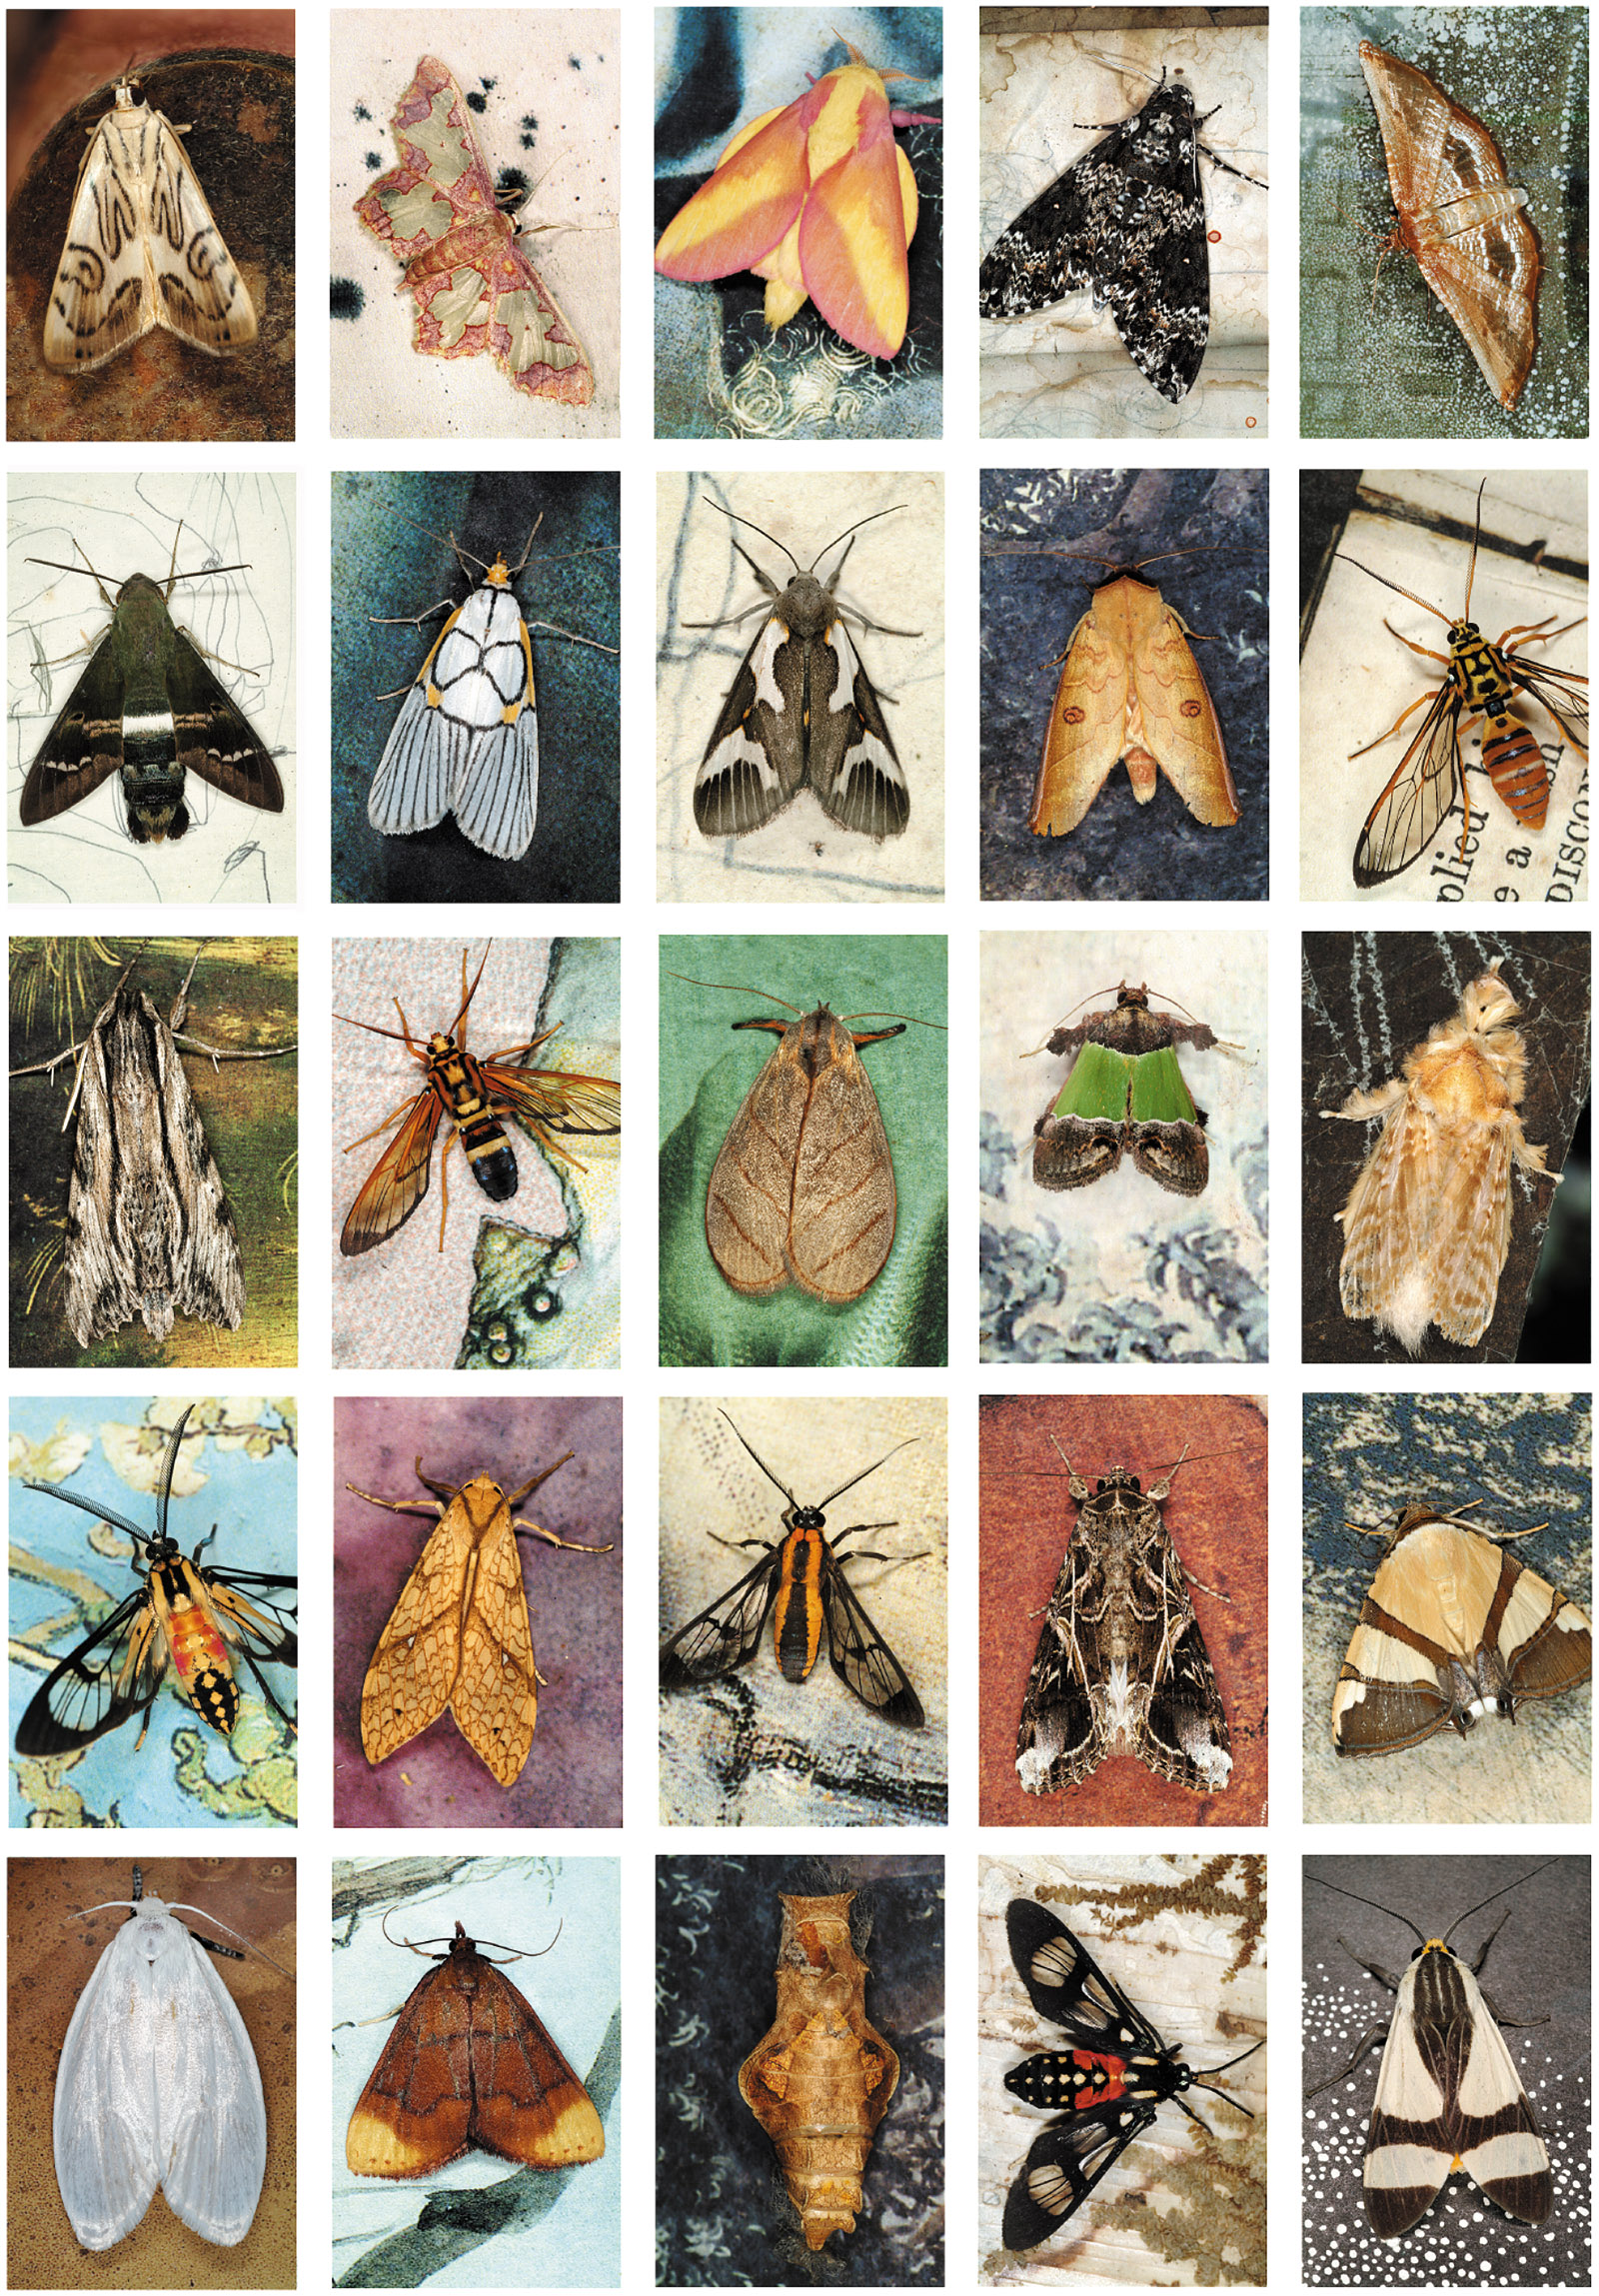 Emmet Gowin: Mariposas Nocturnas Index #44, Bolivia, 2011; from 'Hidden Likeness: Photographer Emmet Gowin at the Morgan,' a recent exhibition at the Morgan Library and Museum. Gowin's new book, Mariposas Nocturnas: A Study of Diversity and Beauty, collects fifty-one of his moth grids and will be published by Princeton University Press in September 2017.